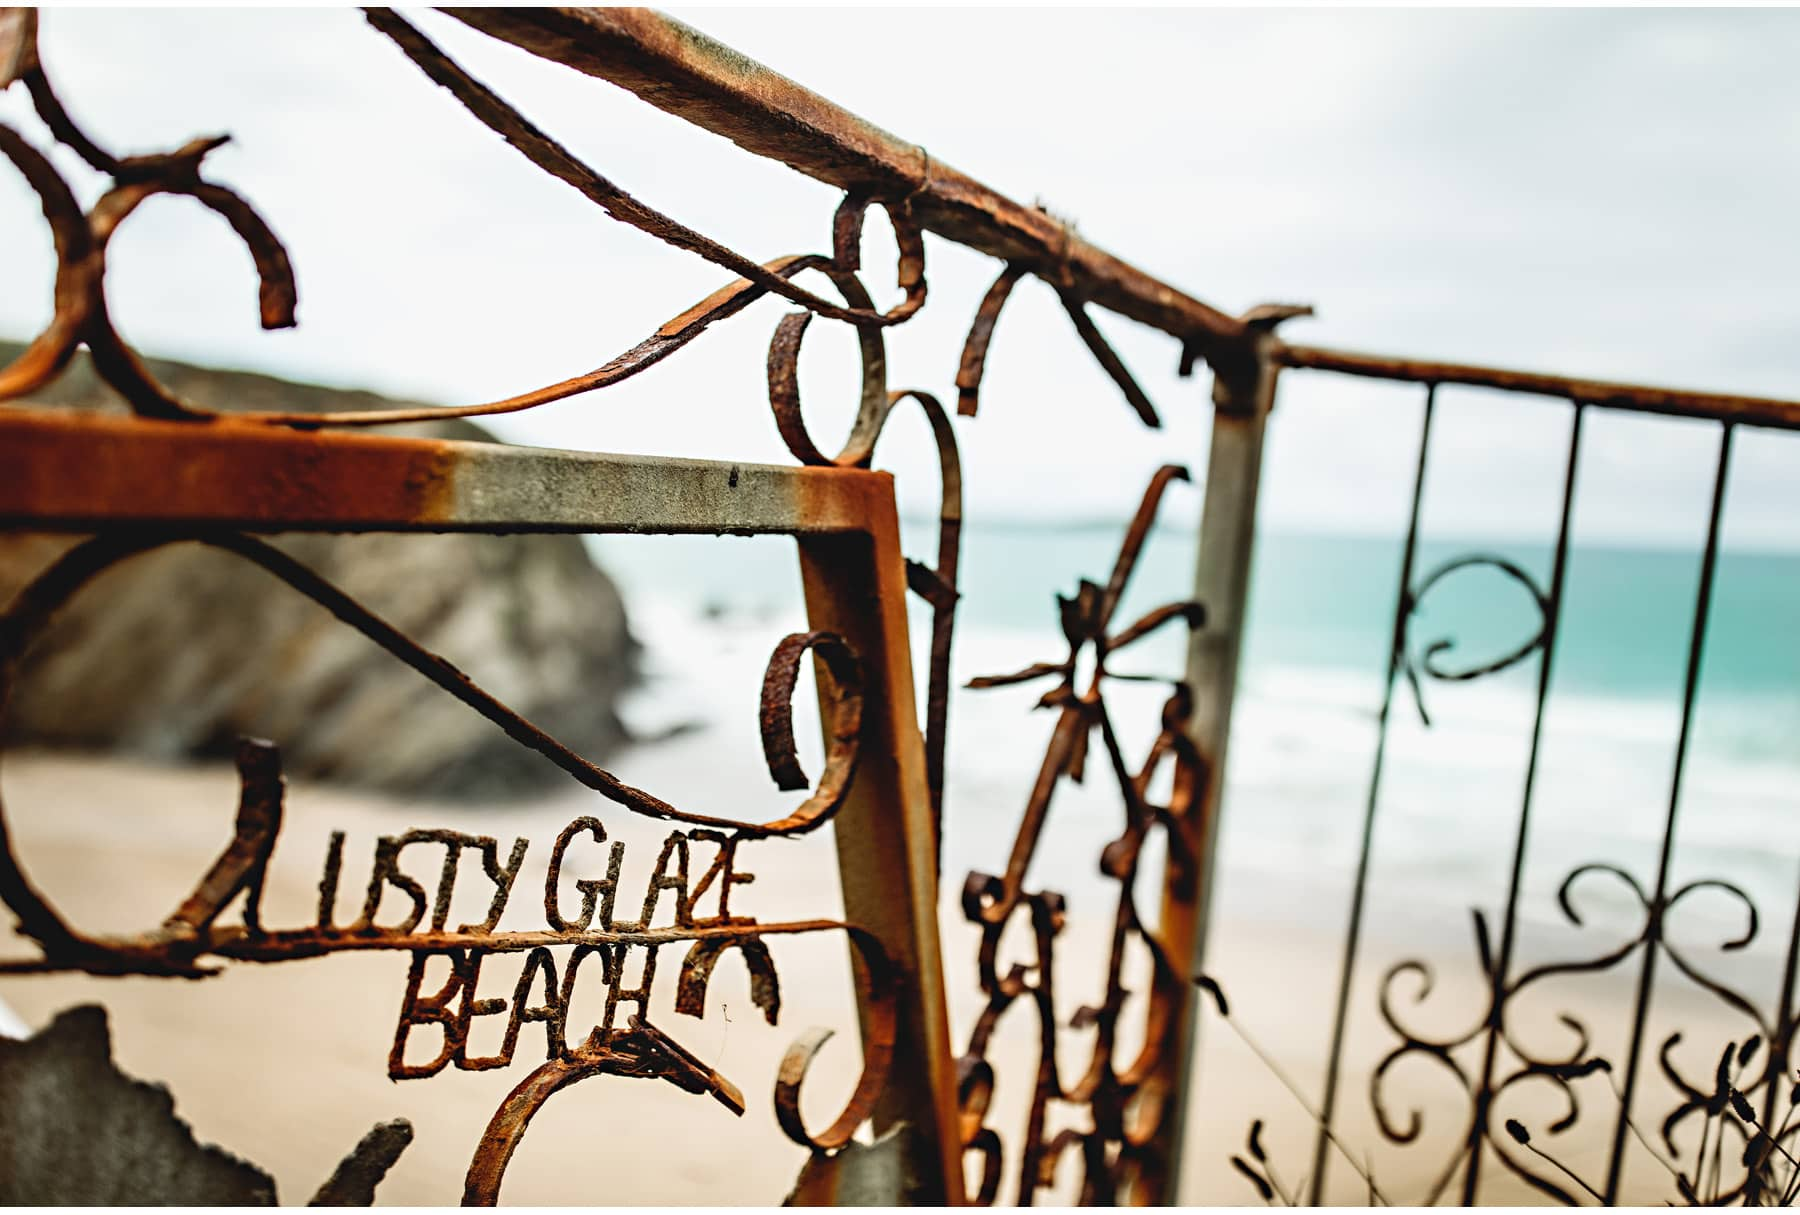 The Lusty Glaze sign made from rusty metal